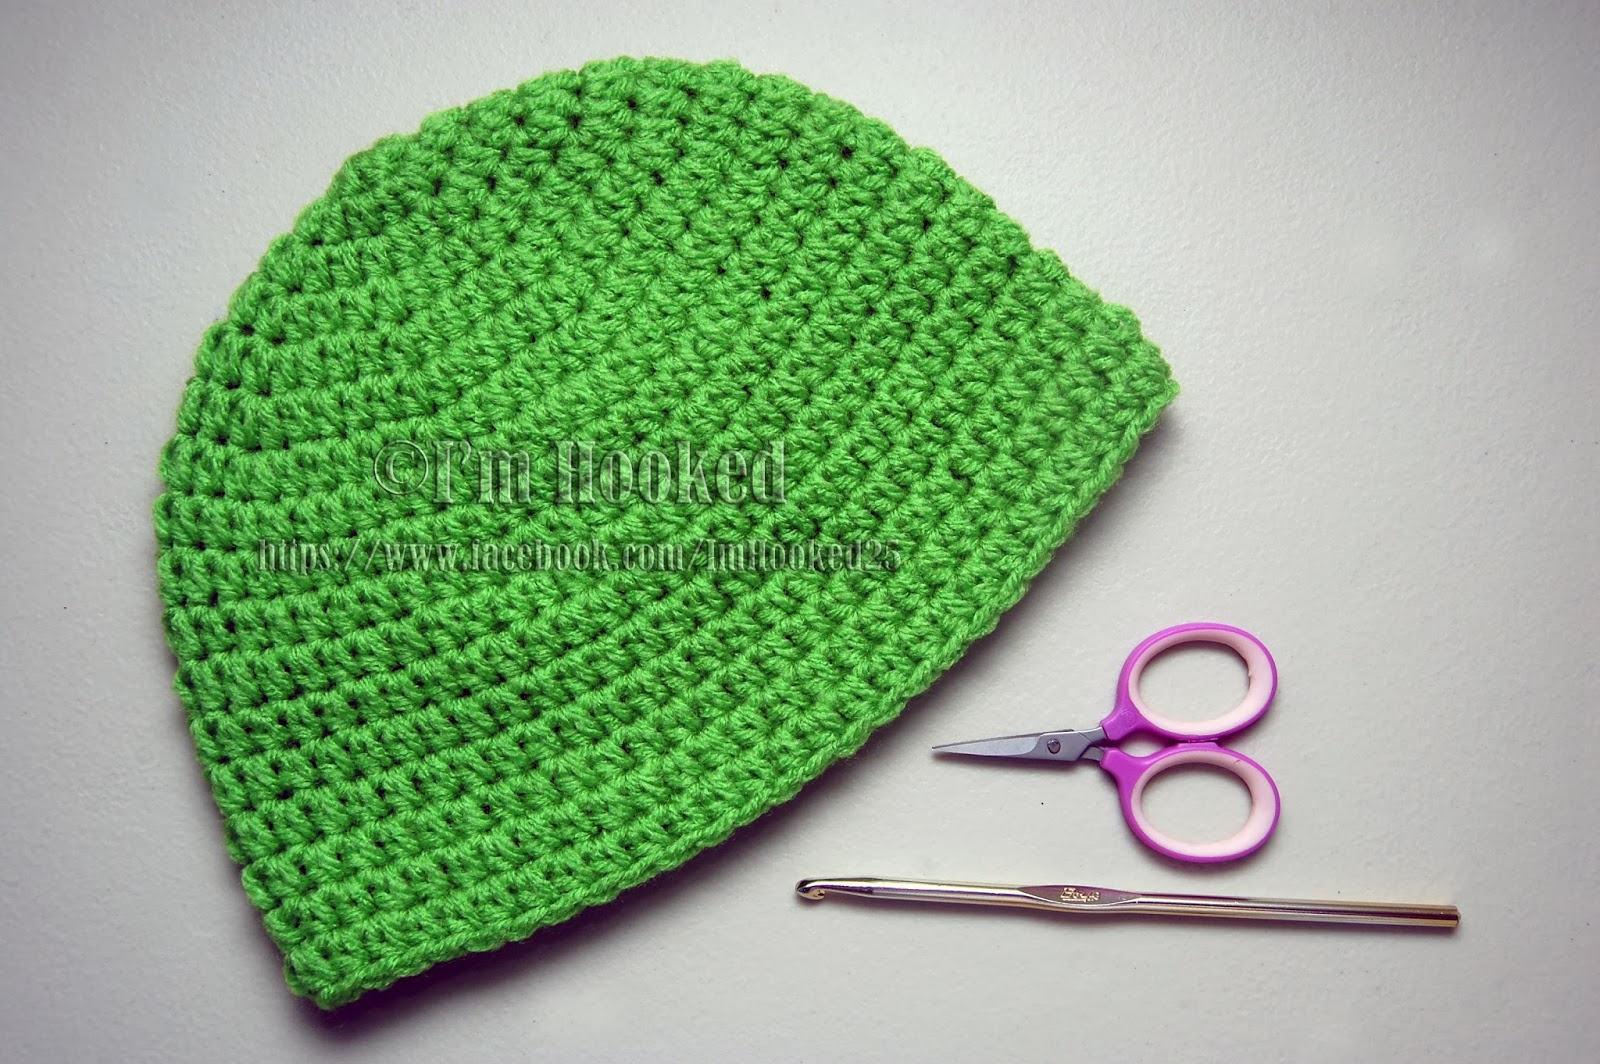 Crochet Treasures: Basic Beanie (Half Double Crochet)